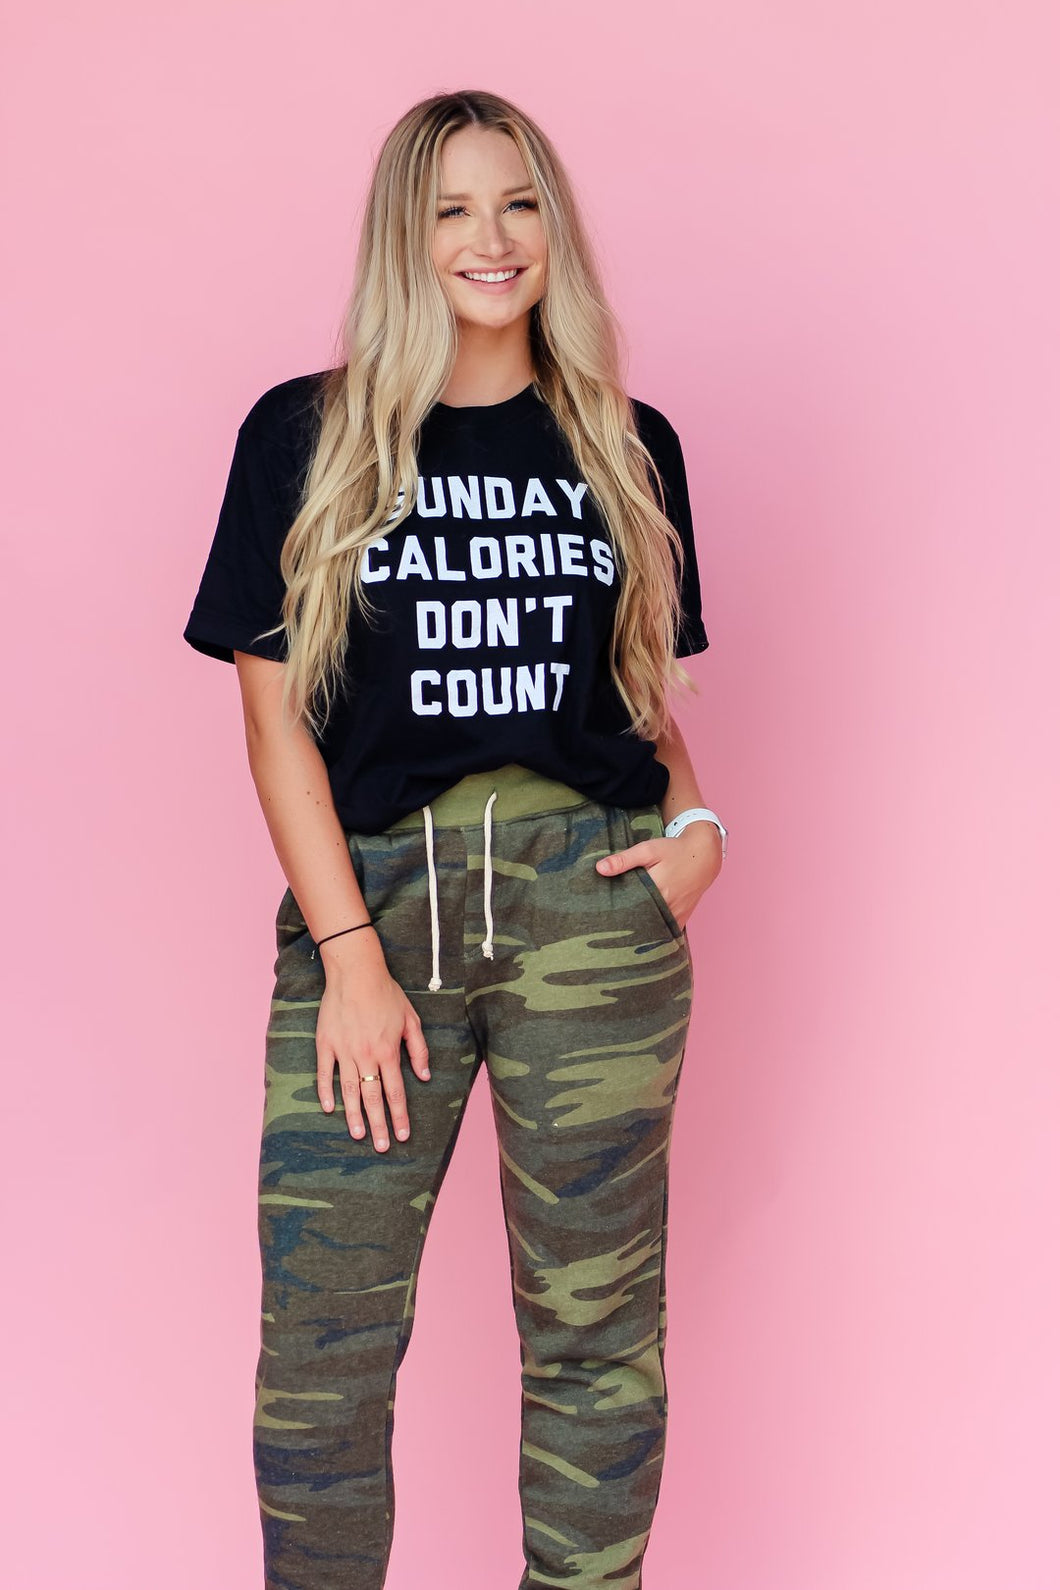 Sunday Calories Don't Count - Graphic Tee